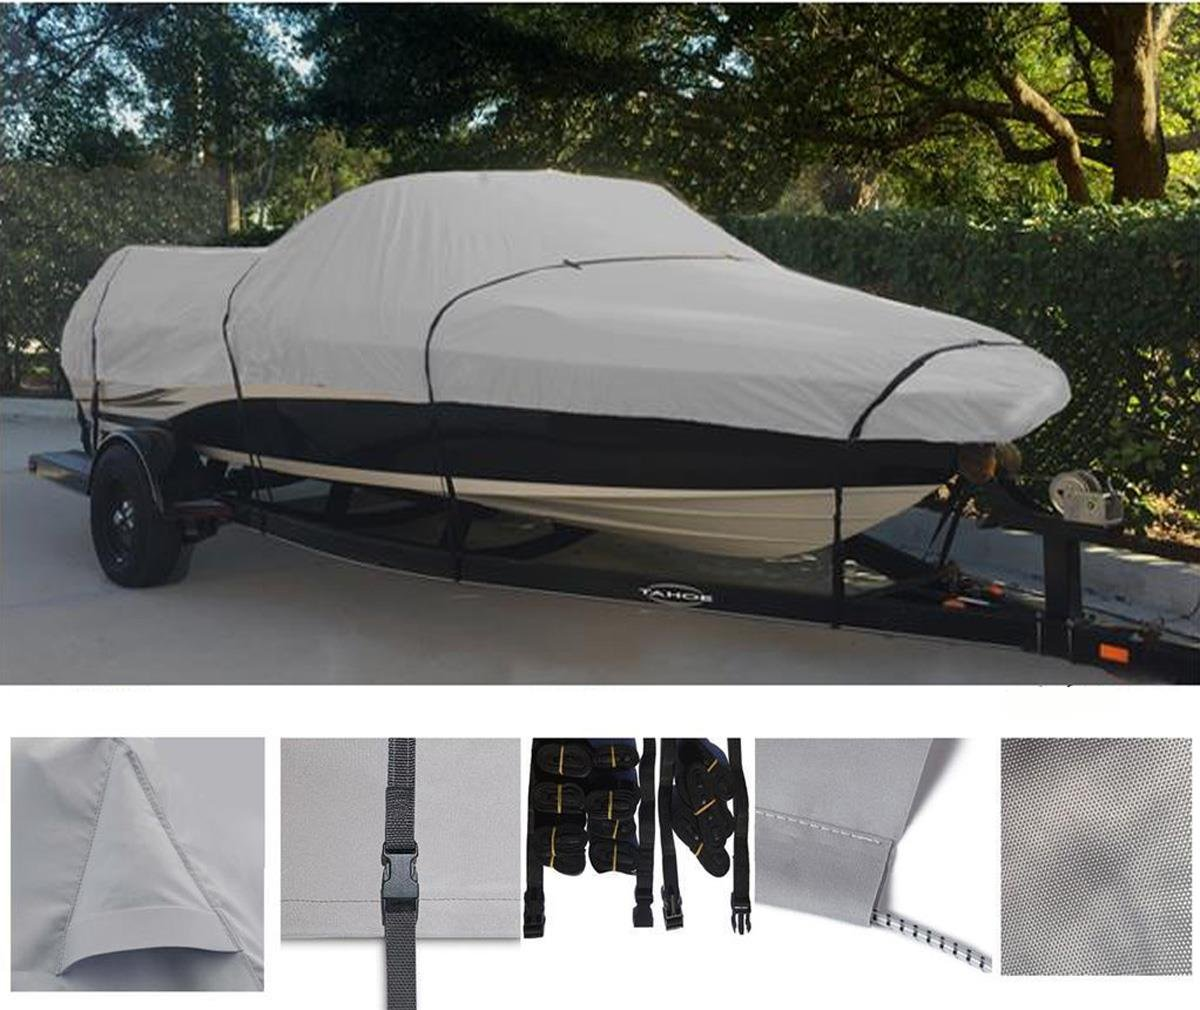 GREY, STORAGE, TRAVEL, MOORING BOAT COVER FOR BAYLINER CAPRI 1750 CU/LS BOWRIDER I/O 1993-1997 by SBU